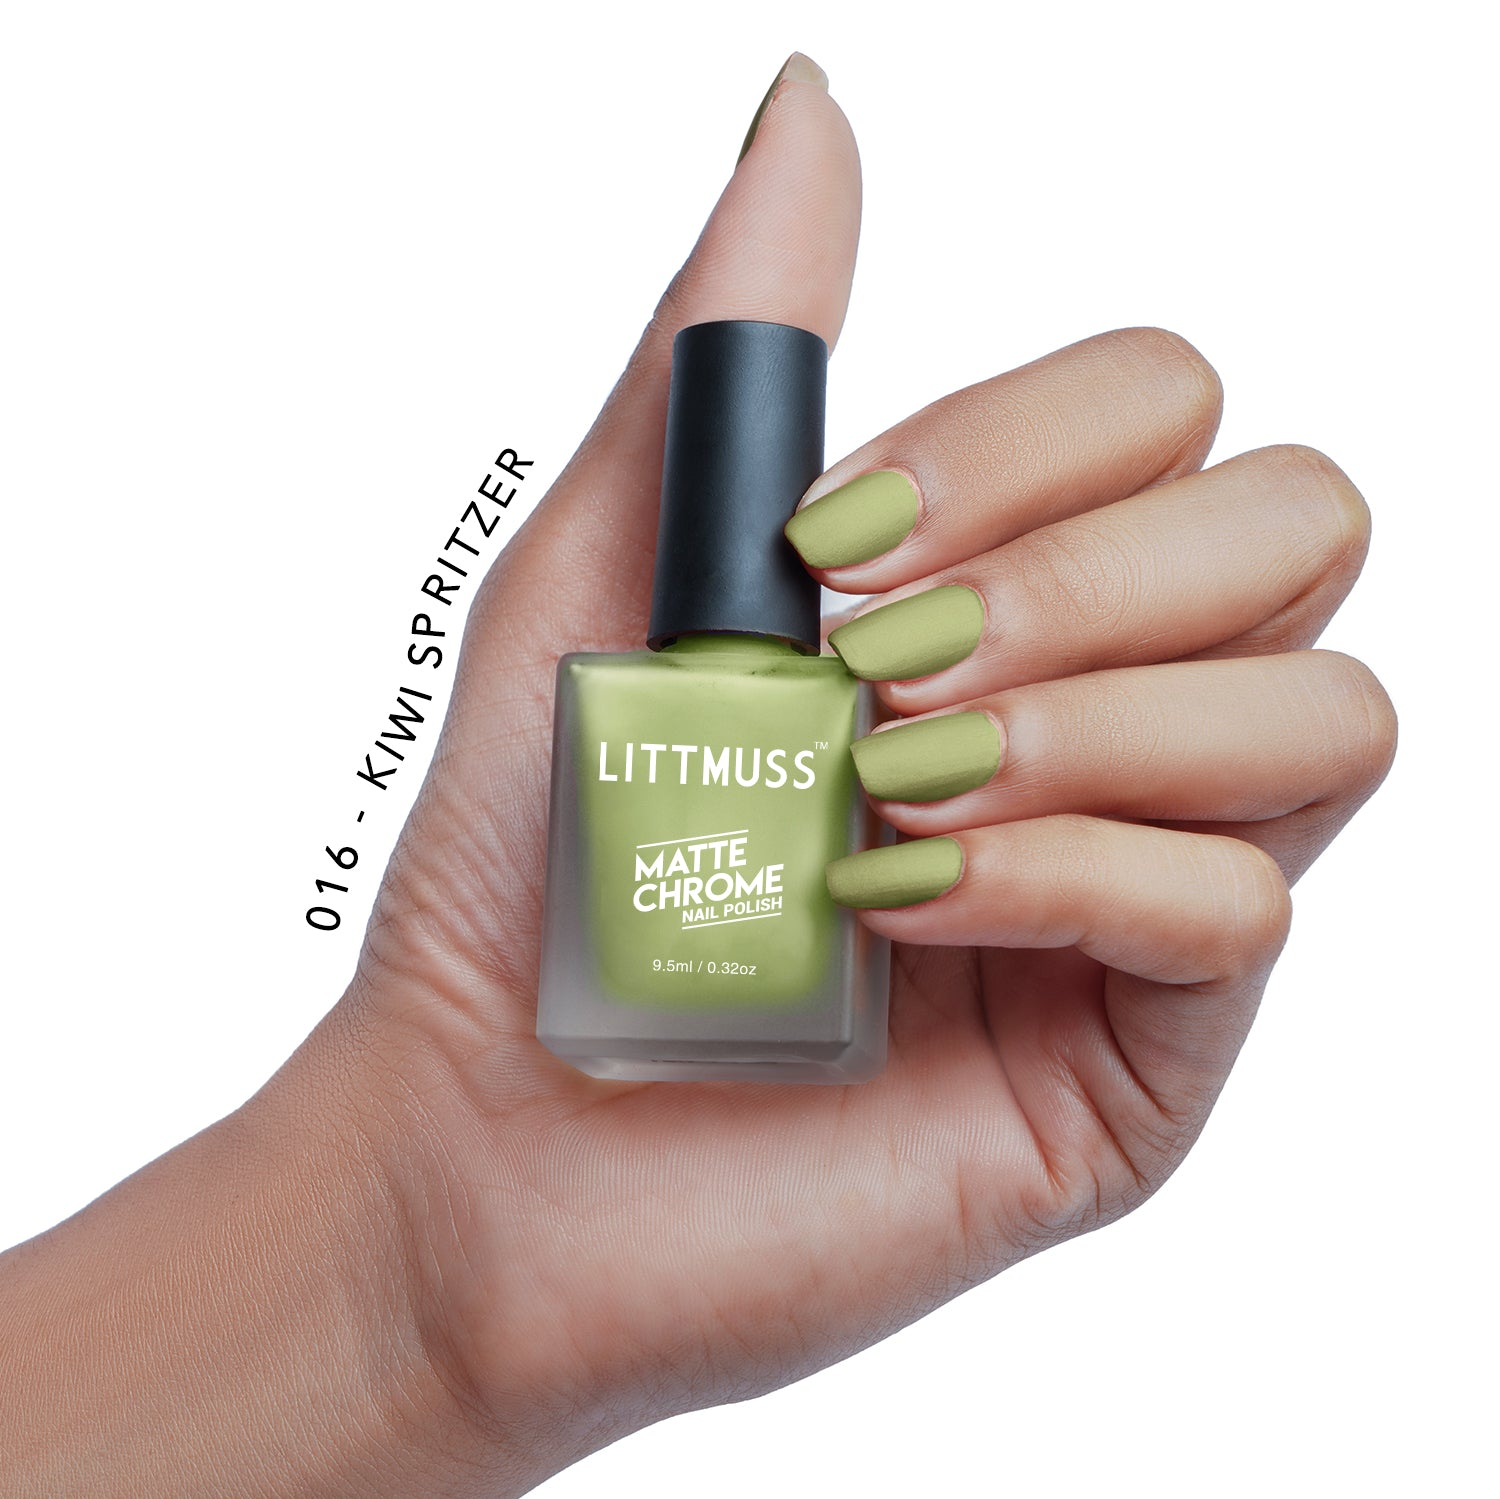 LITTMUSS Matte Chrome & Sugar Candy Nail Polish Hold Me Up Combo